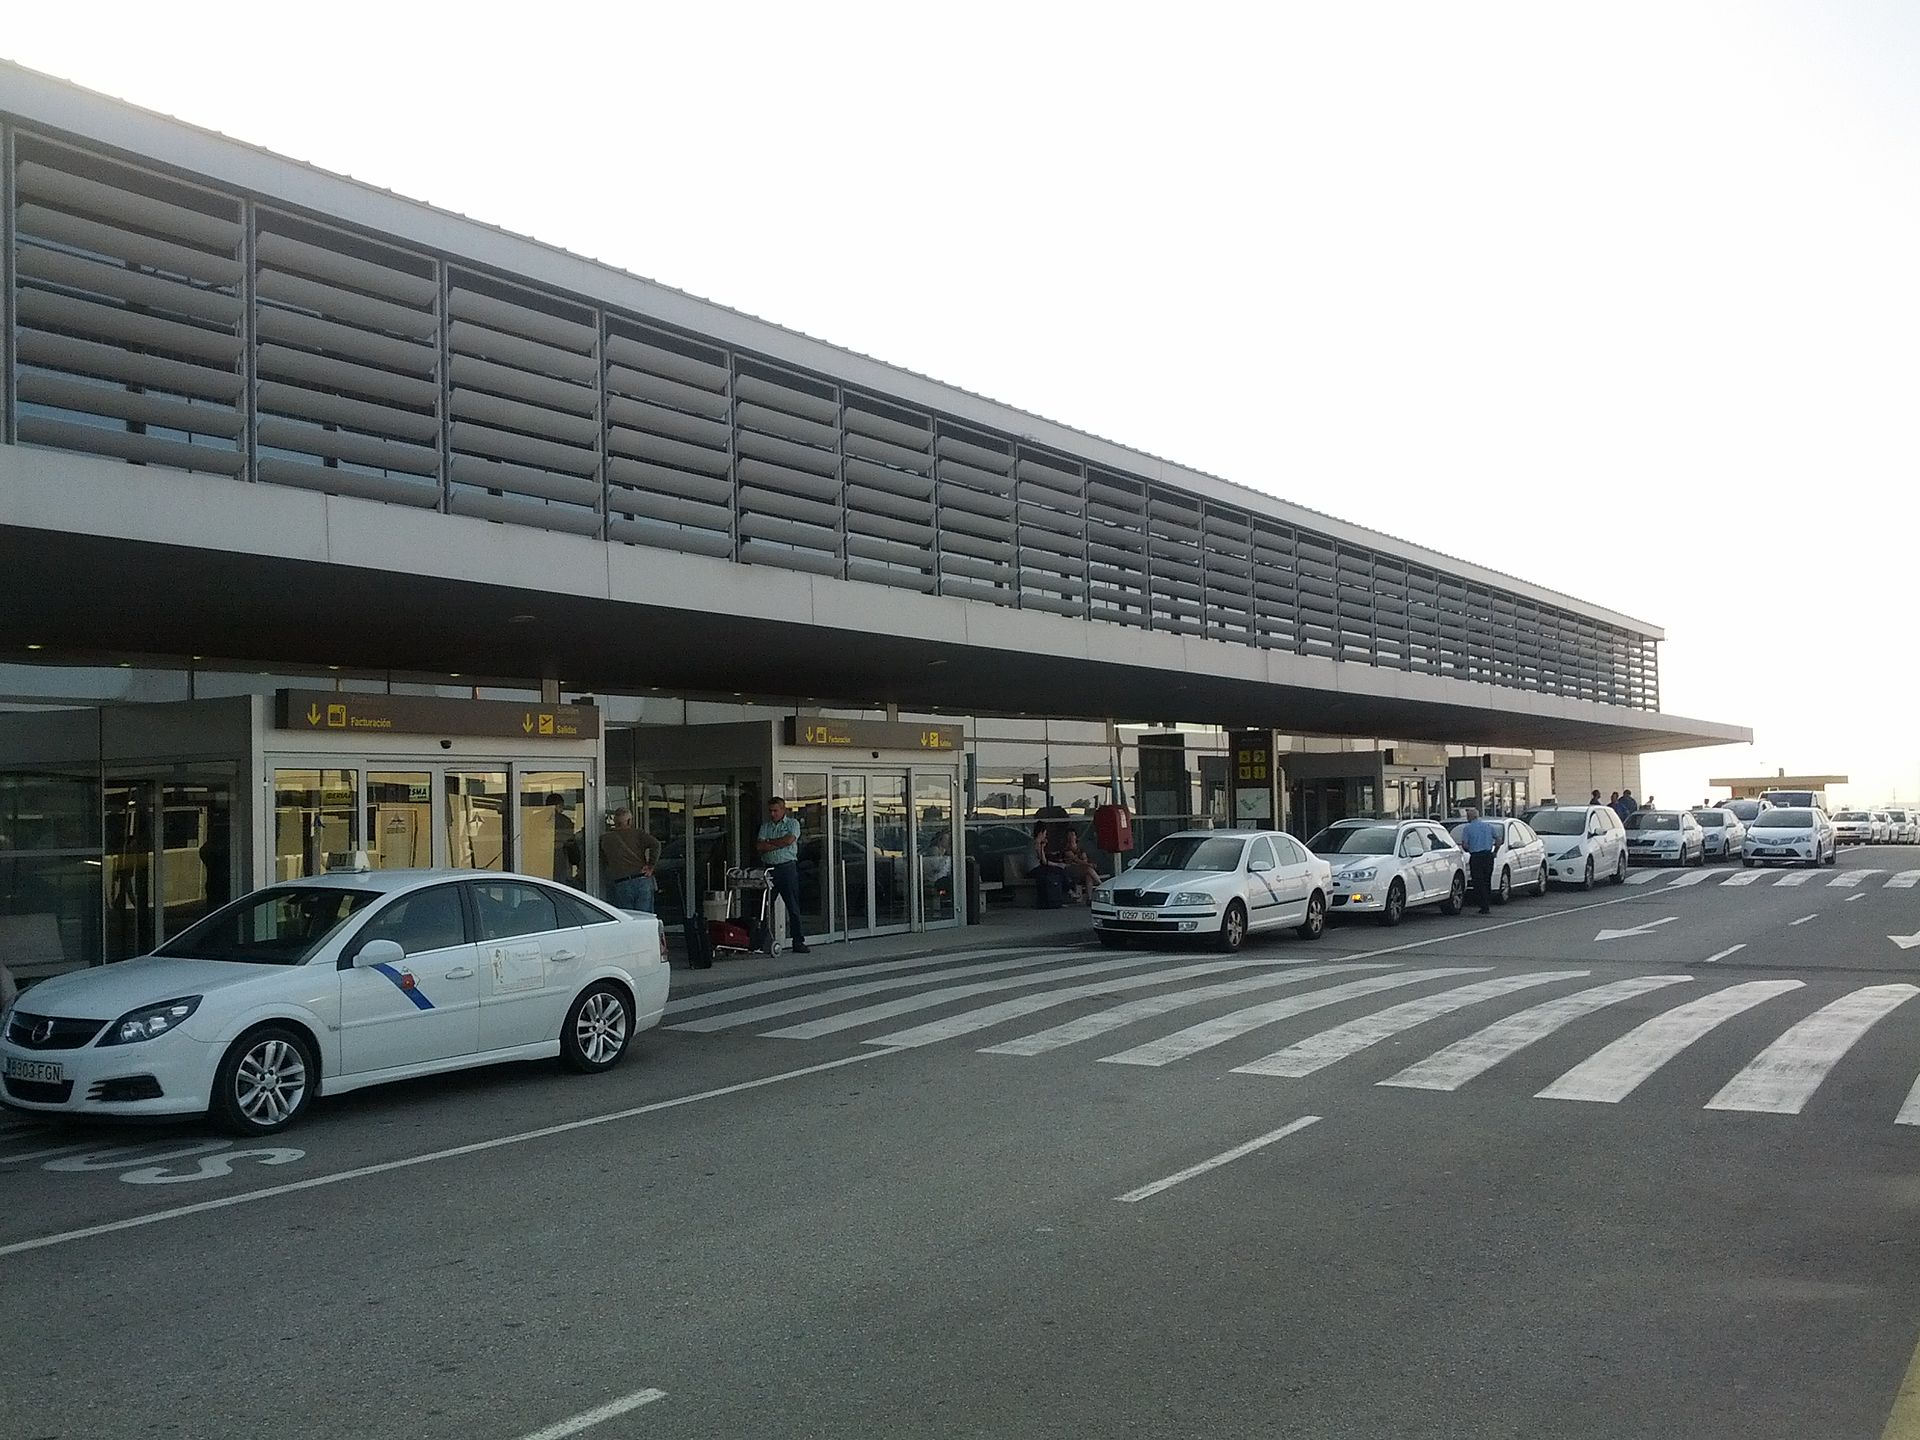 Reus Airport is the main international airport serving the city of Reus.